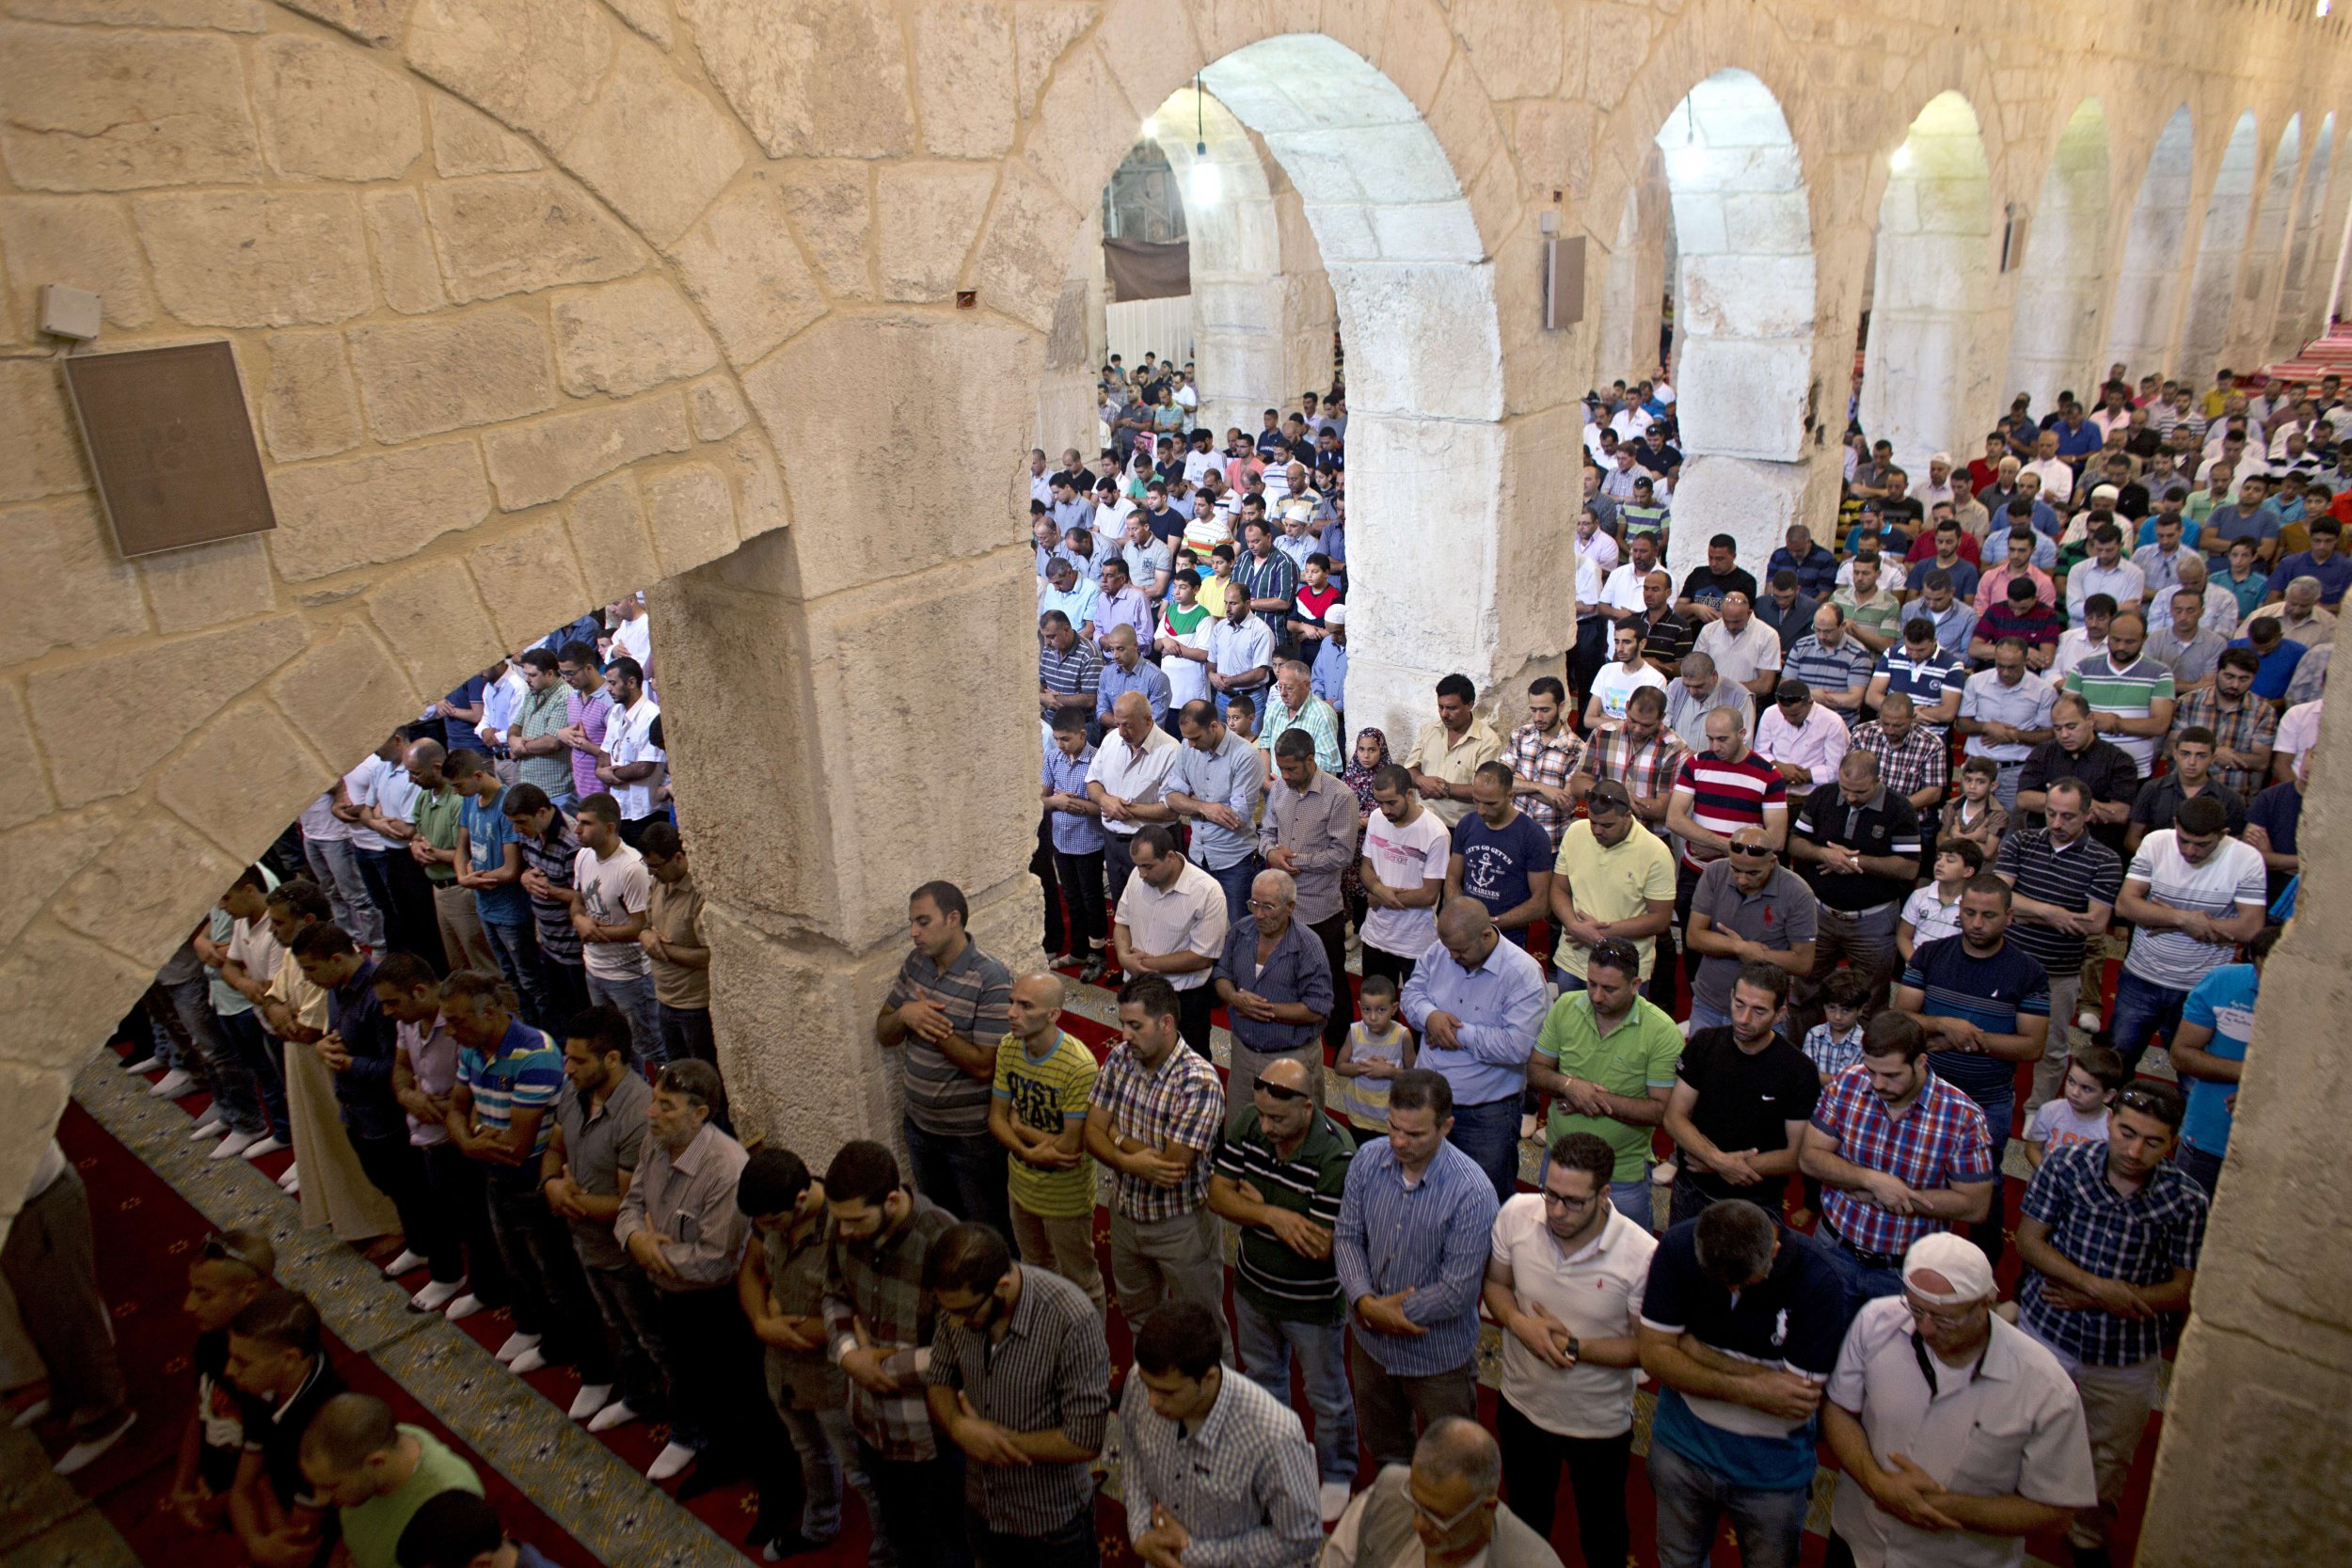 Jerusalem's Al-Aqsa Mosque burns at the same time as fire engulfs Notre Dame Cathedral in Paris